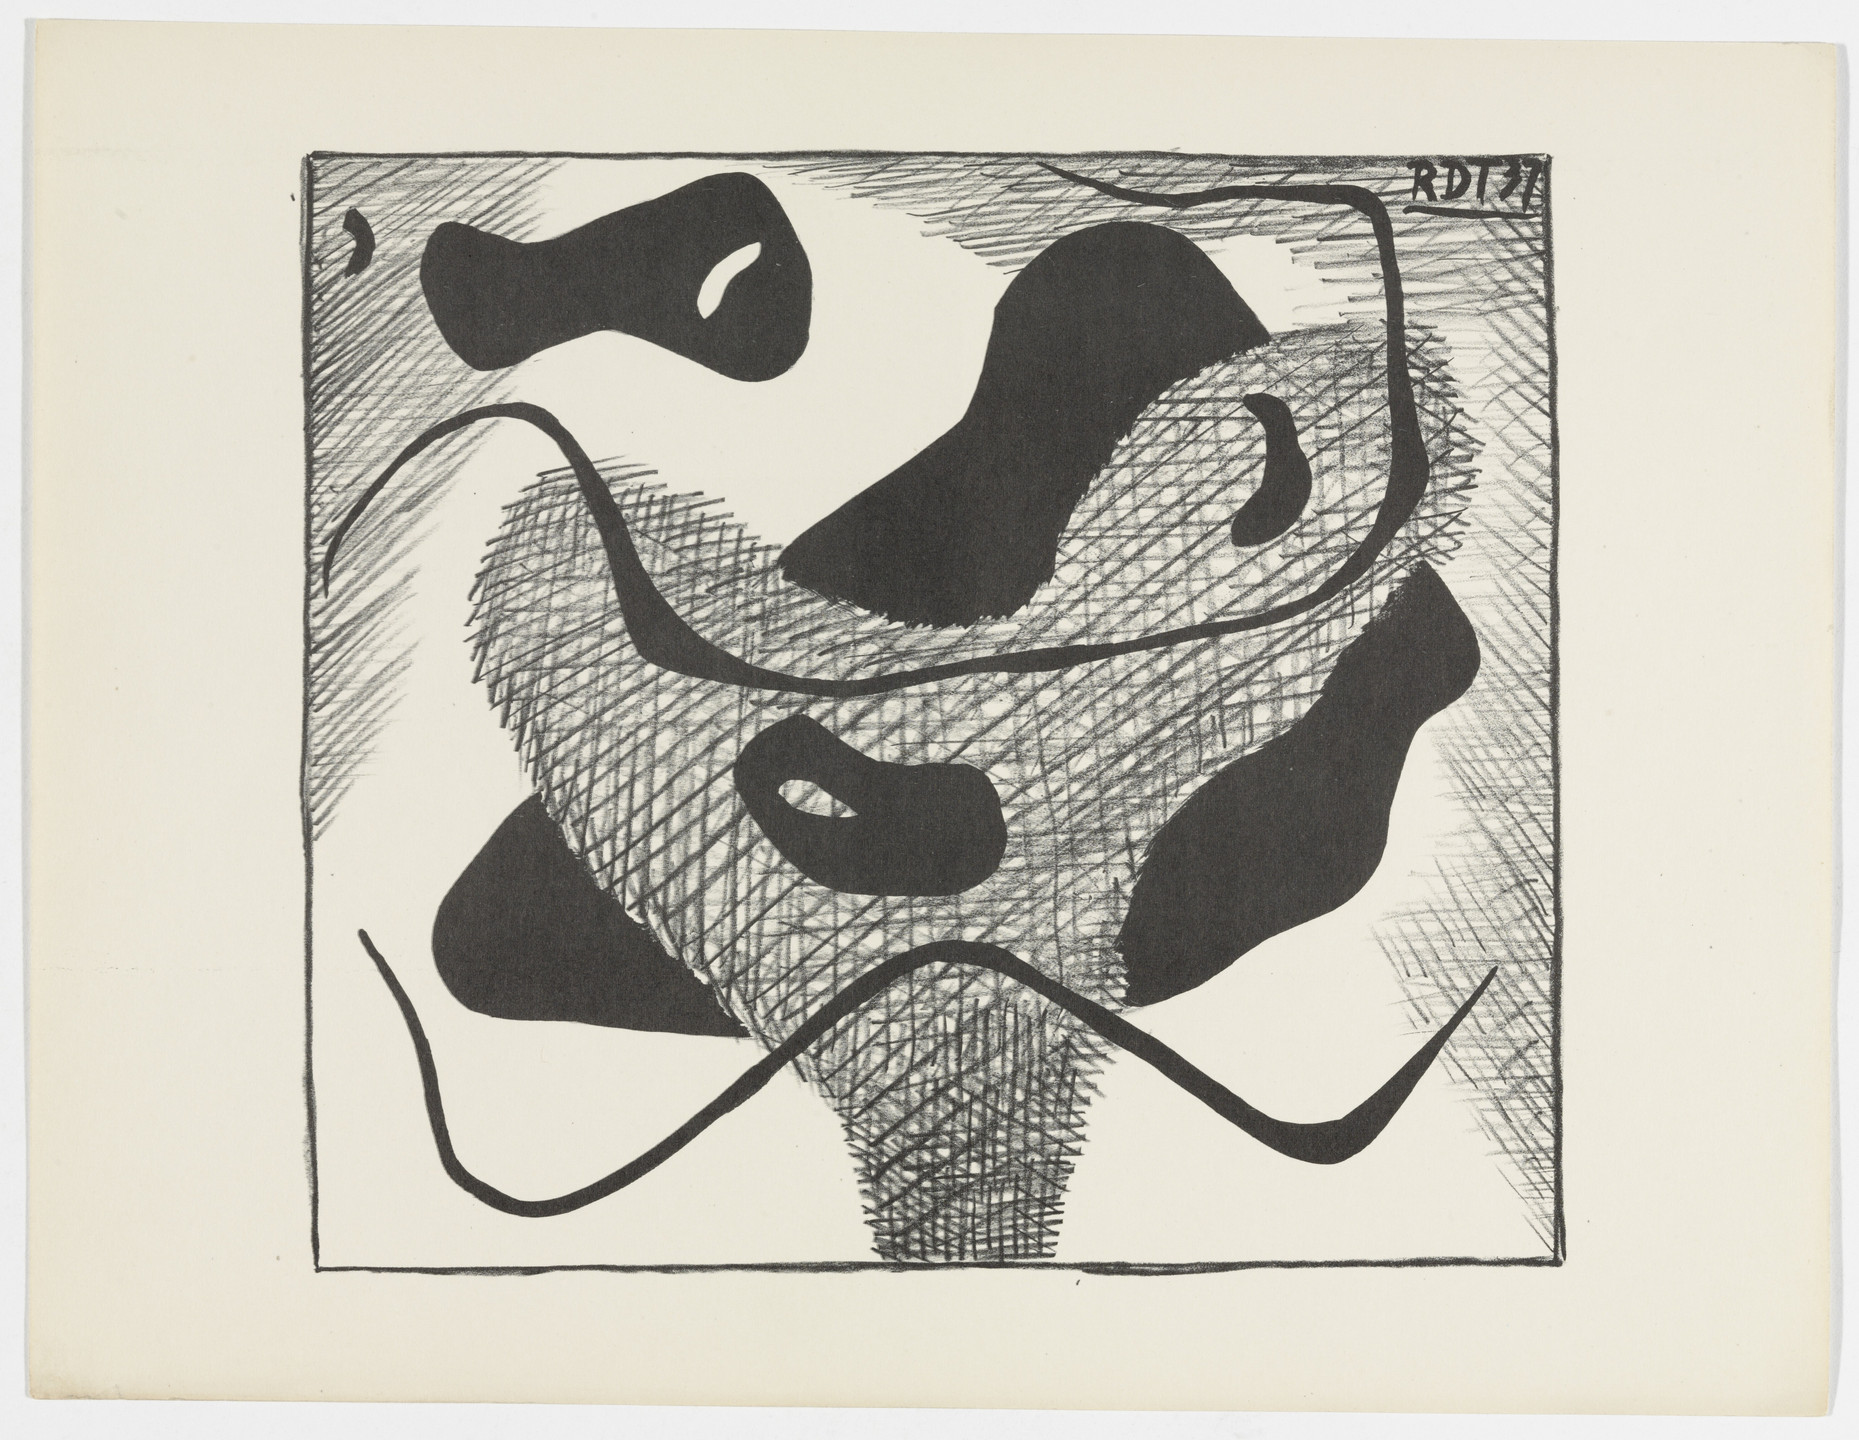 Rupert D. Turnbull. Untitled from American Abstract Artists. 1937